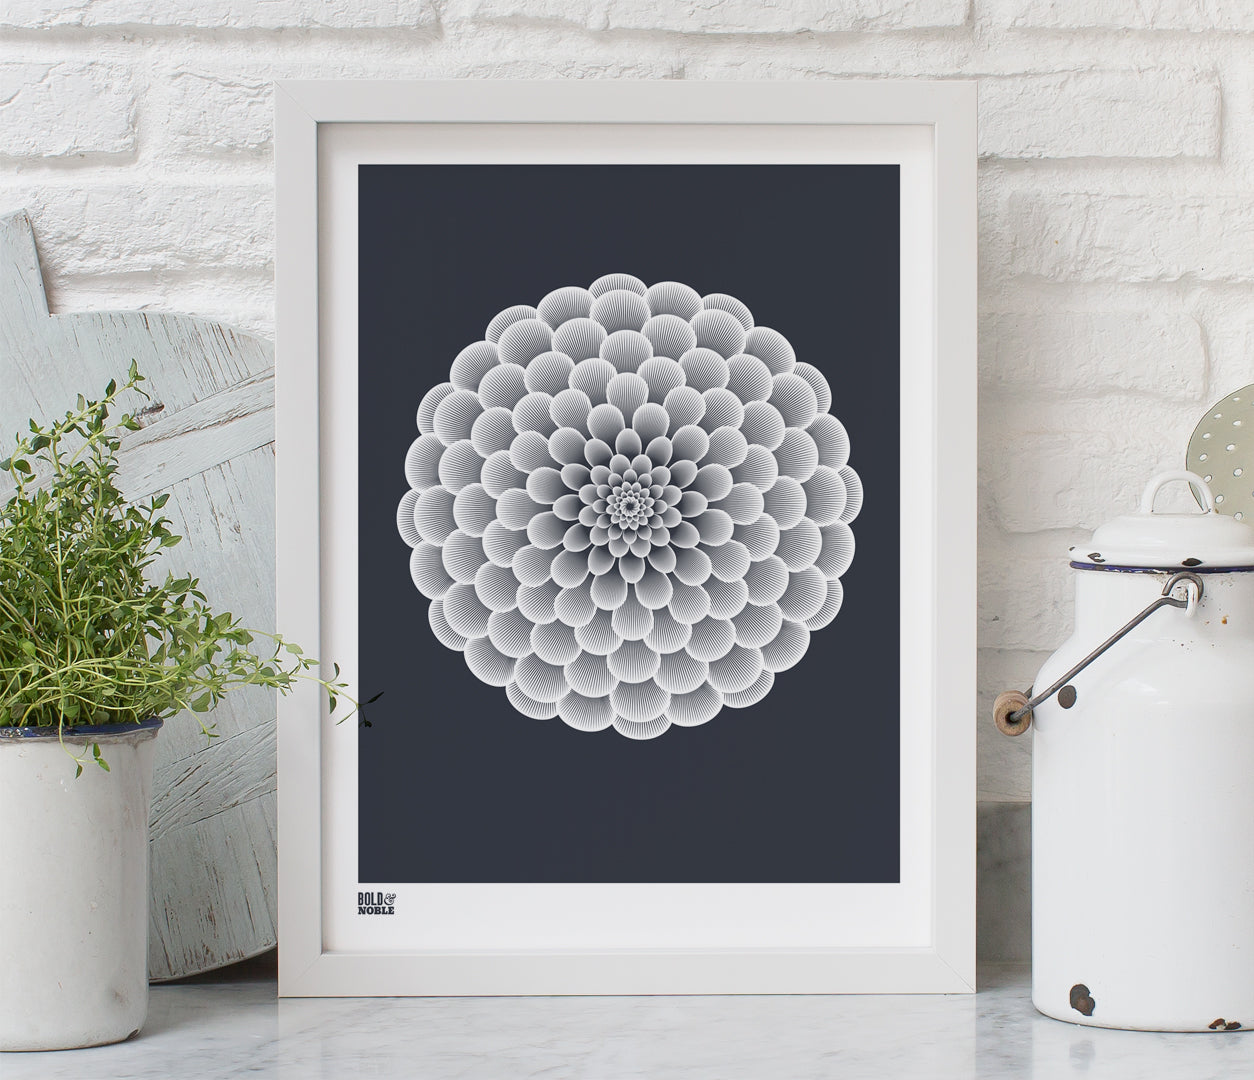 Pictures and Wall Art, Screen Printed Dahlia Pompon in Sheer Slate